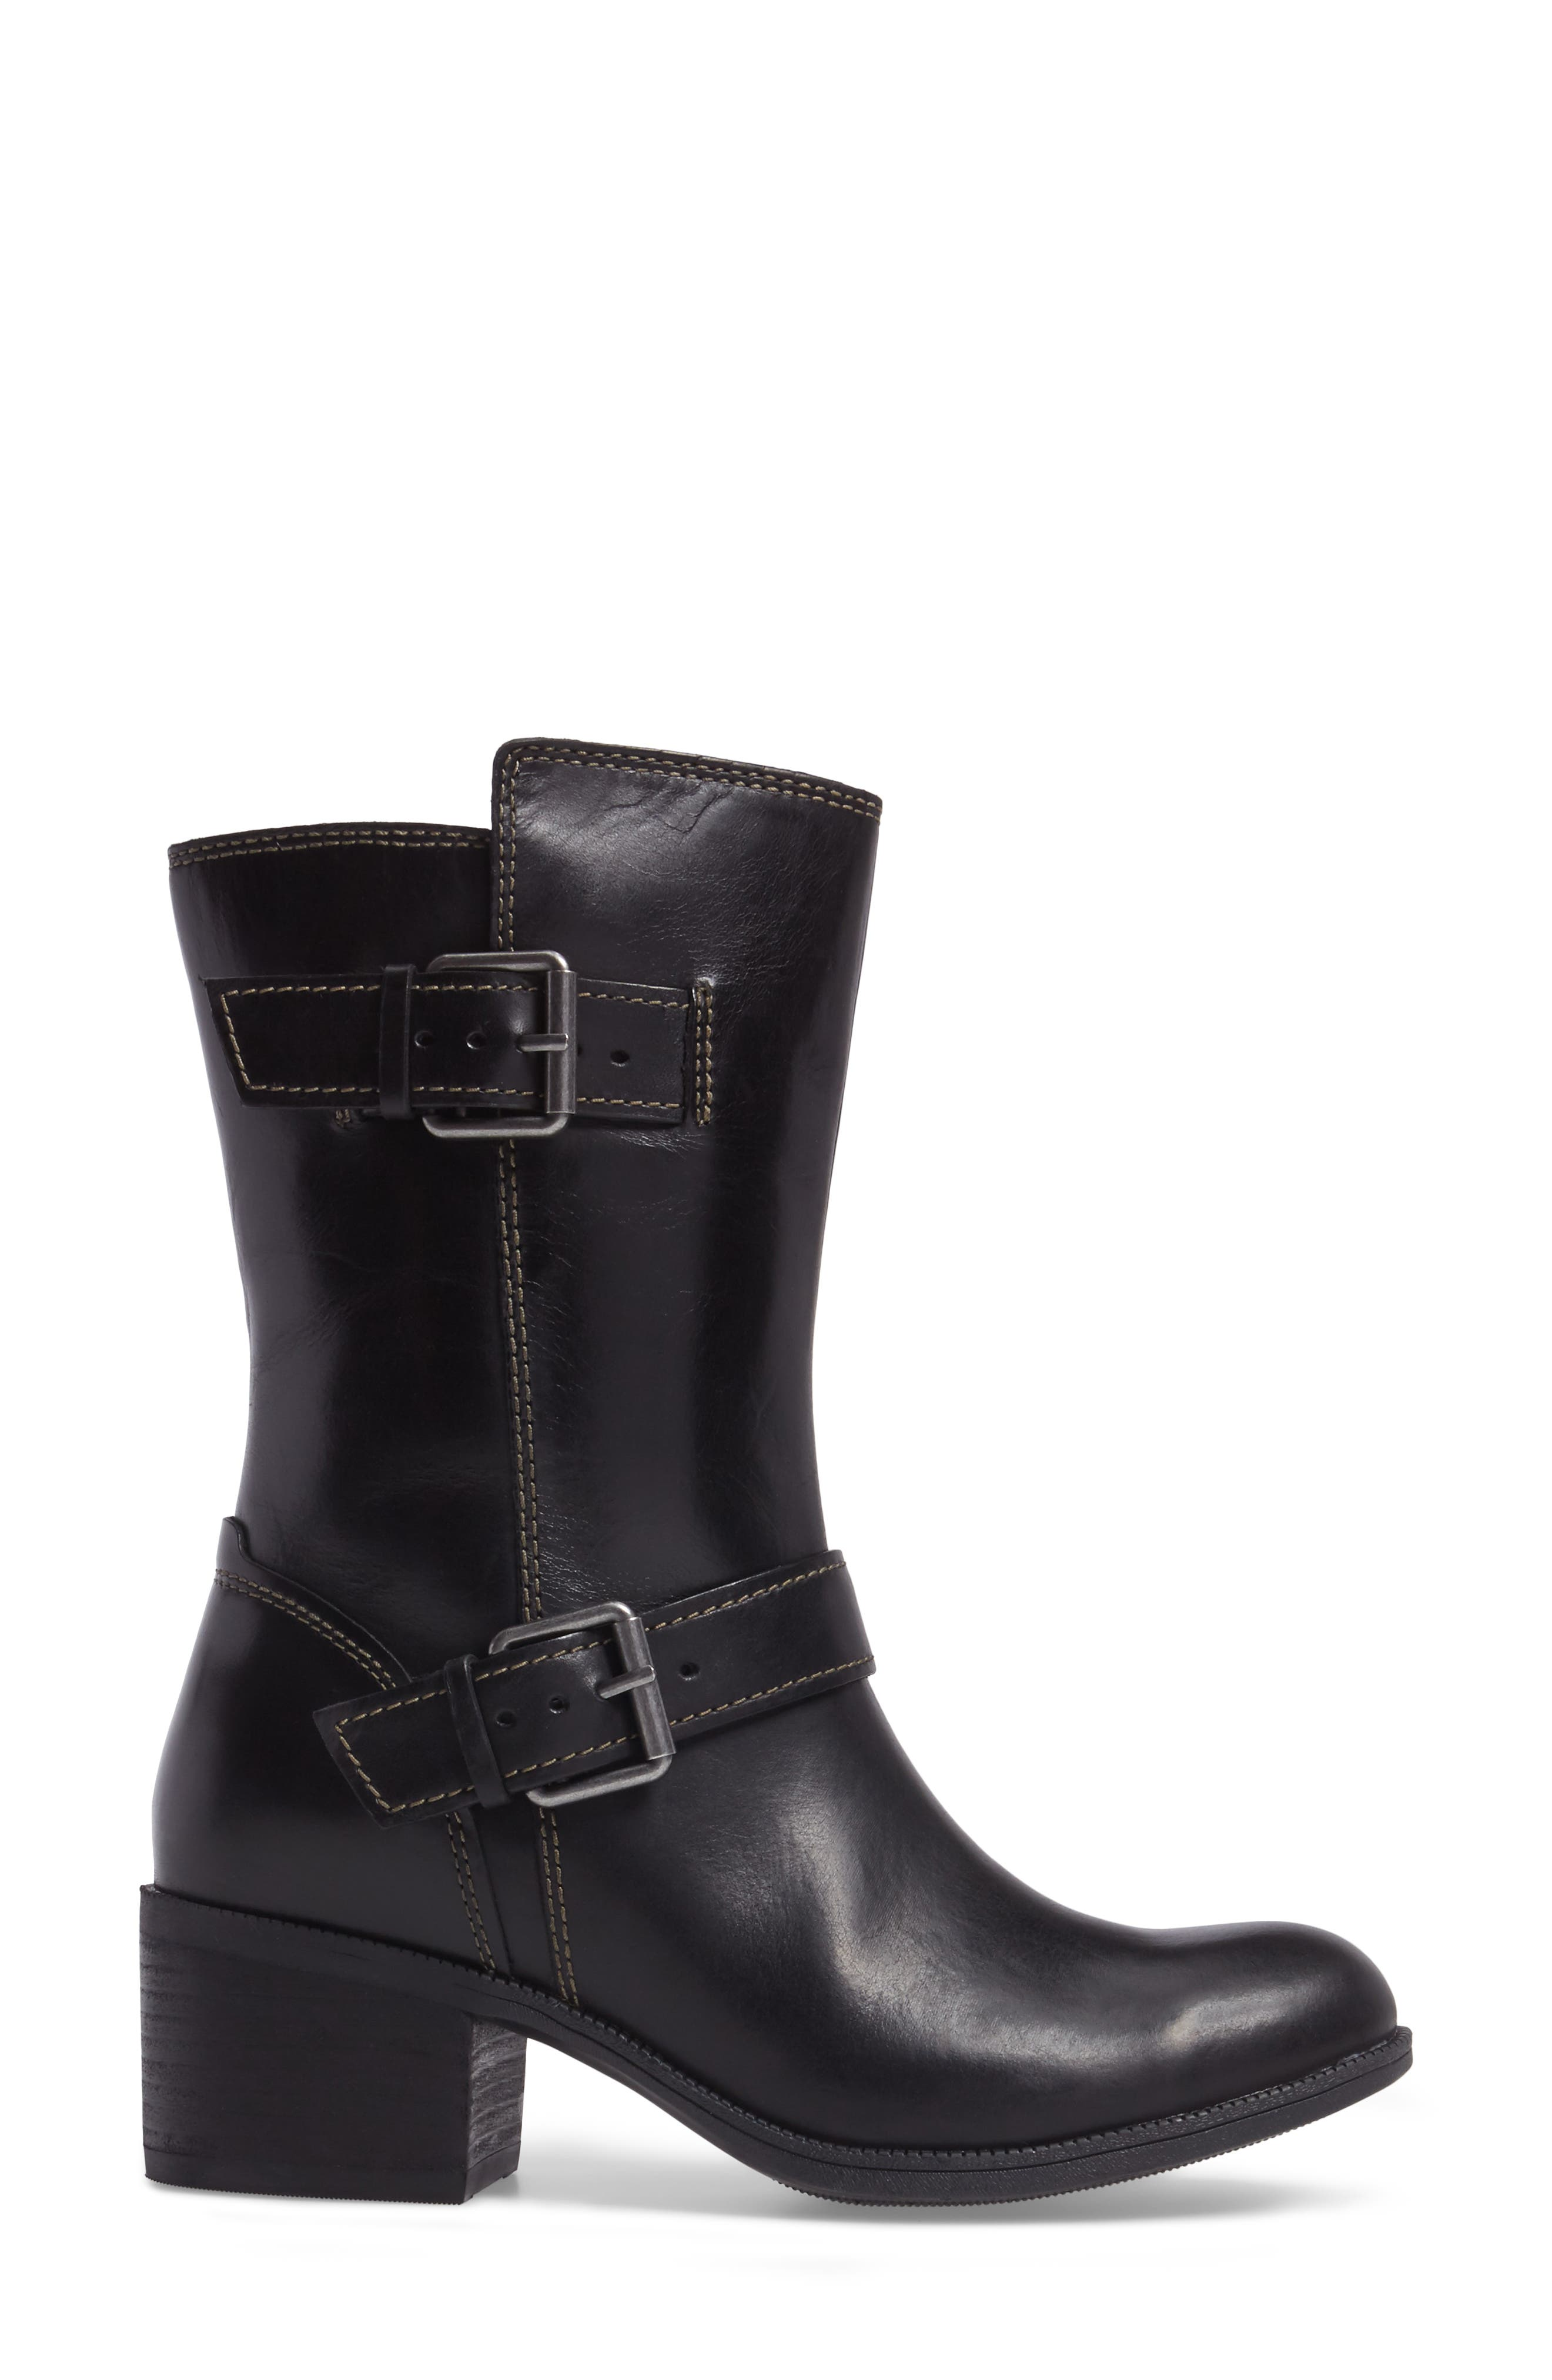 Maypearl Oasis Boot,                             Alternate thumbnail 3, color,                             Black Leather